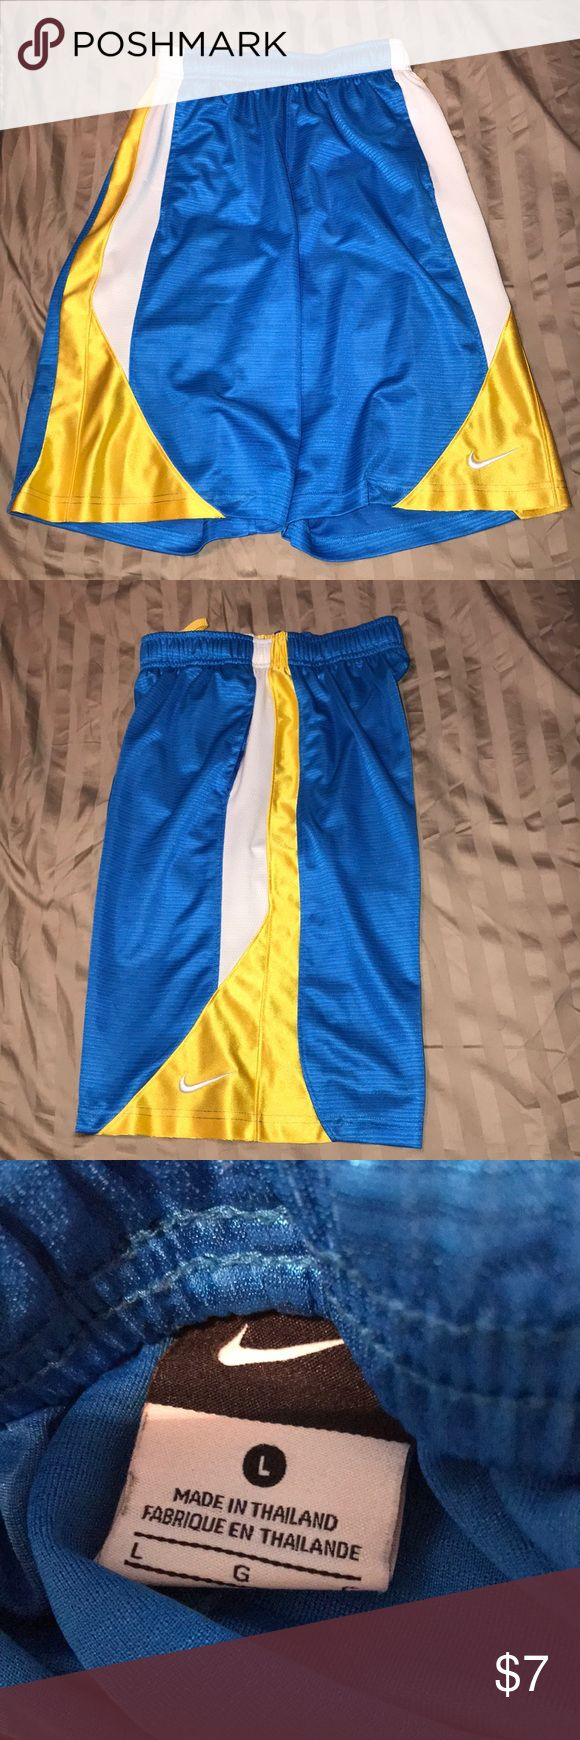 EUC boys Nike DriFit Shorts Size large. Nike quality at a great price! EUC fast shipping and bundle discounts. Check out the others boys Nike shorts in my closet! Nike Bottoms Shorts